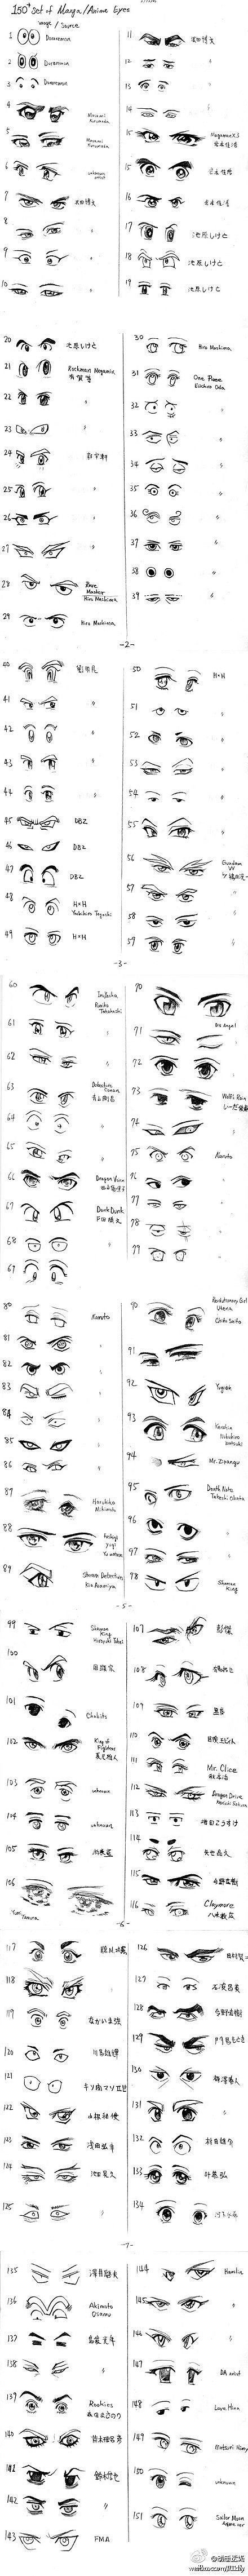 Dessin expression Humeurs yeux